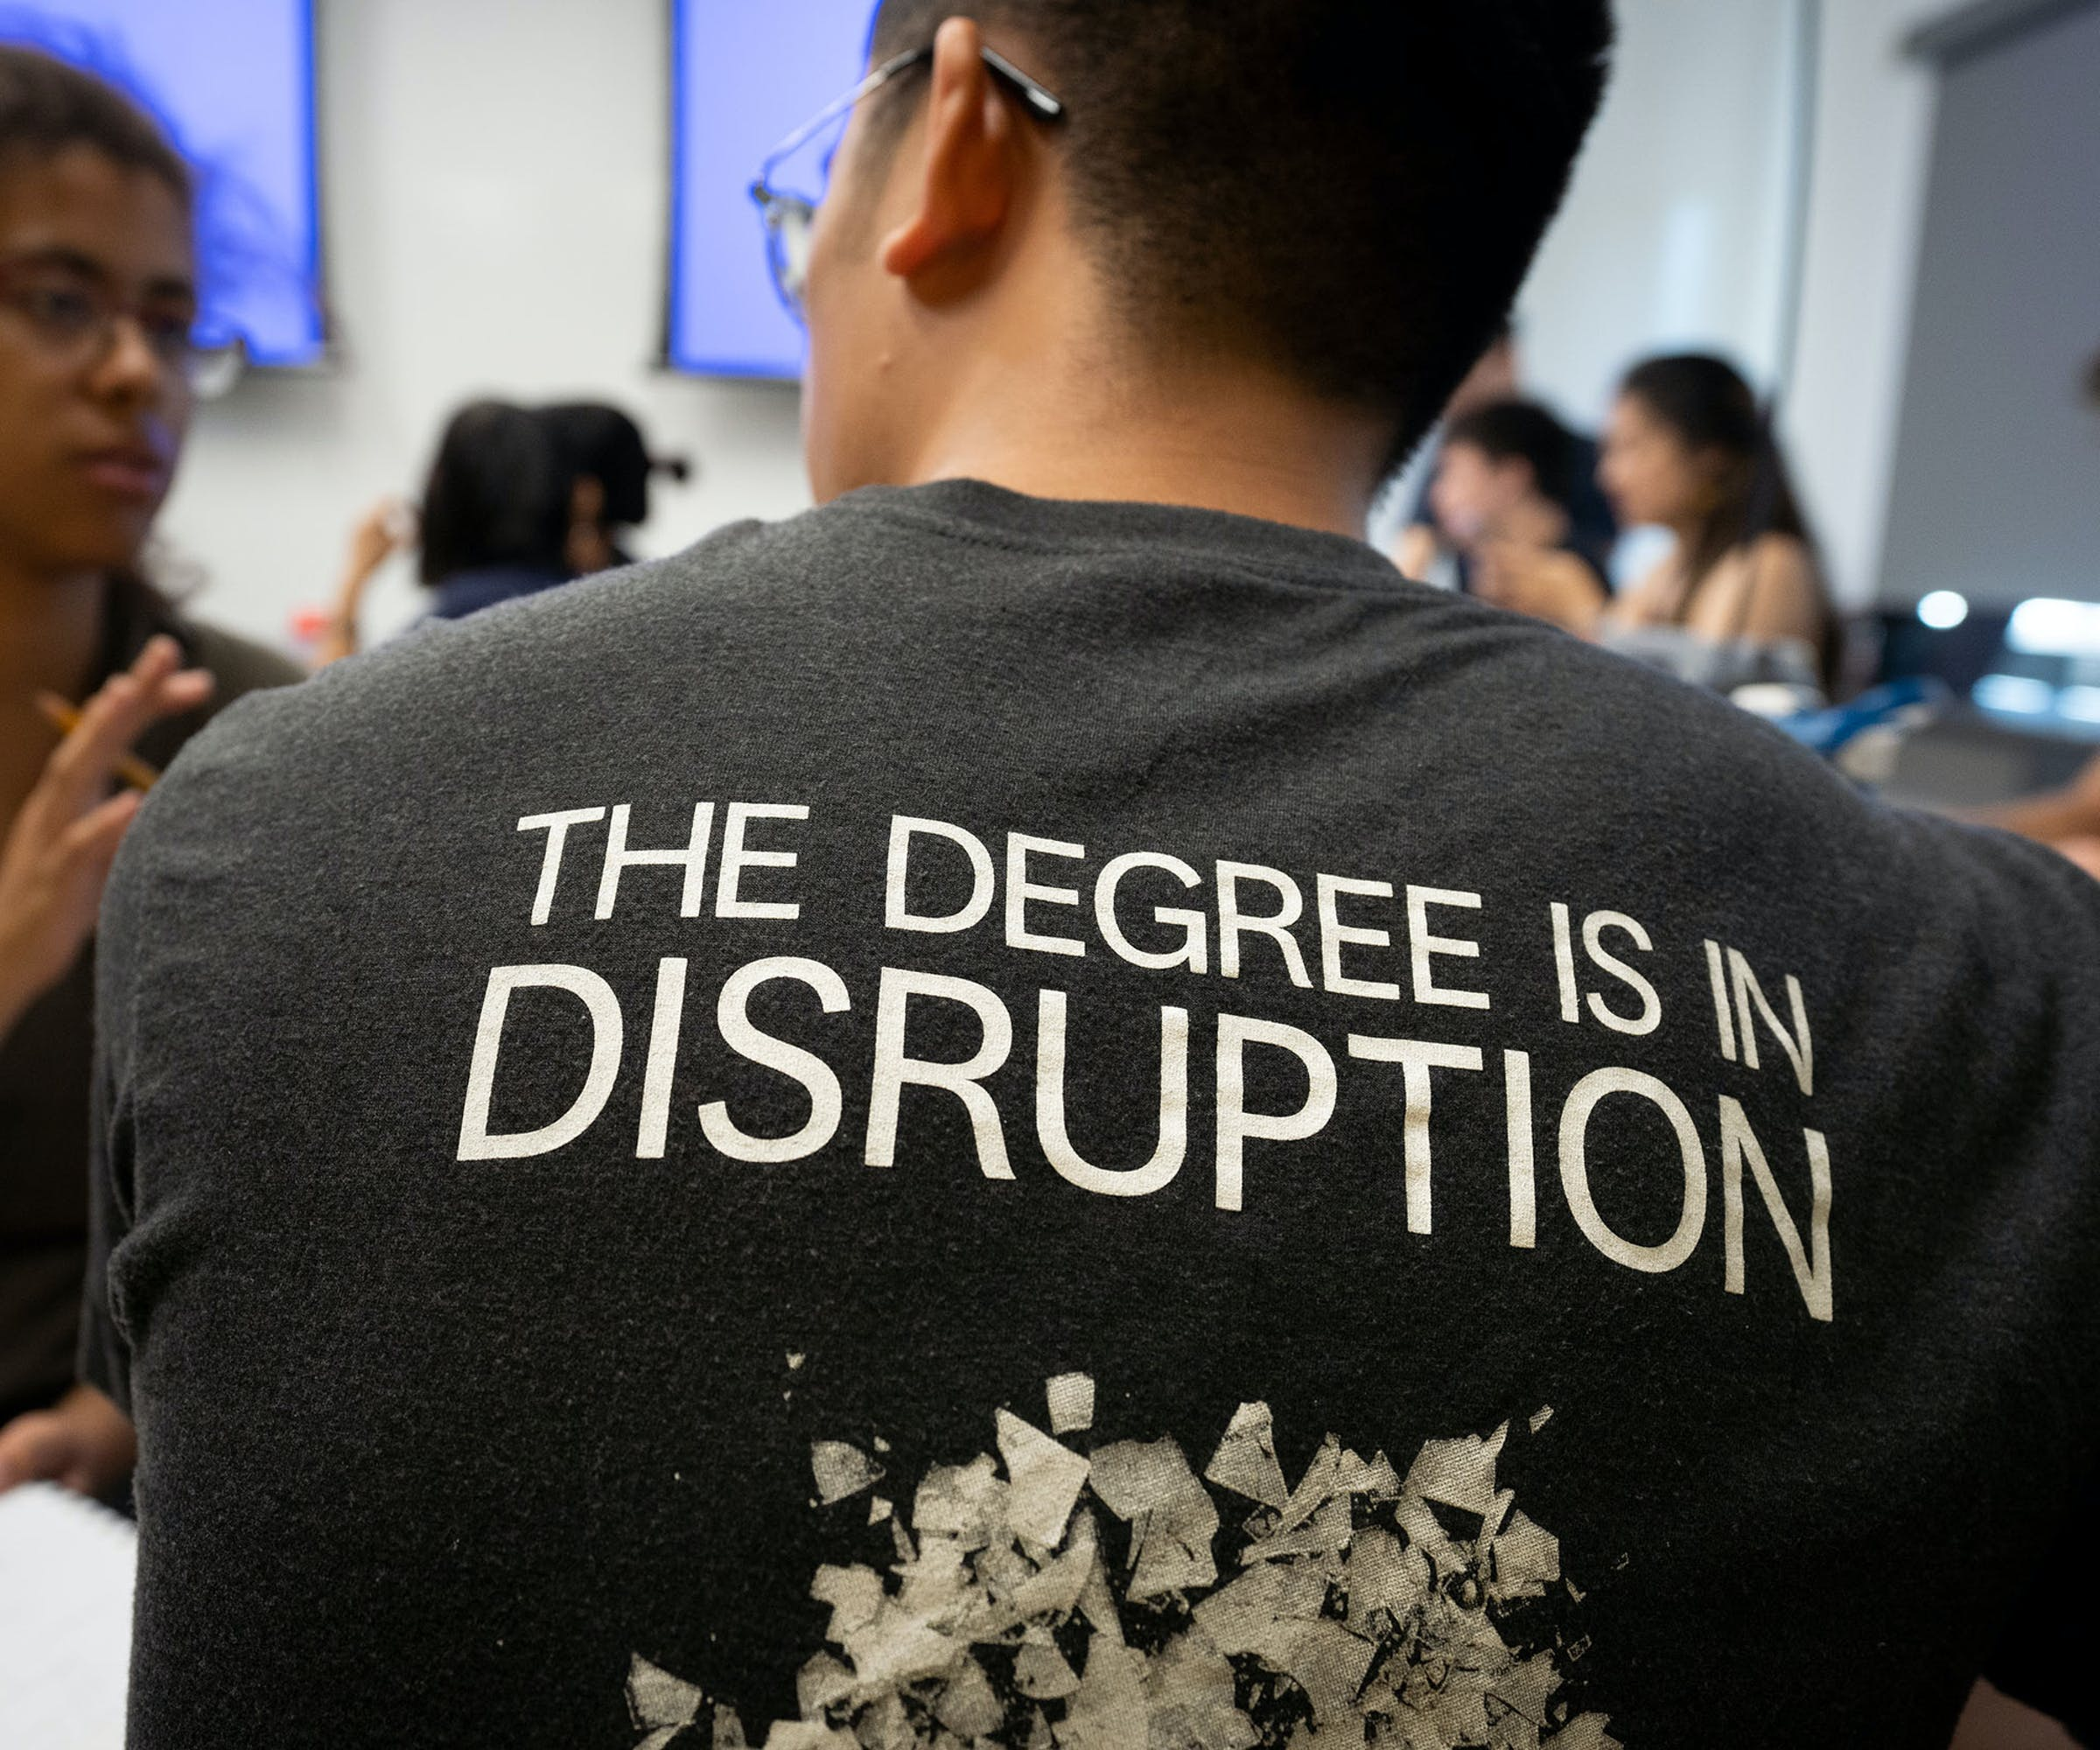 Two students, shirt says the degree is in disruption.